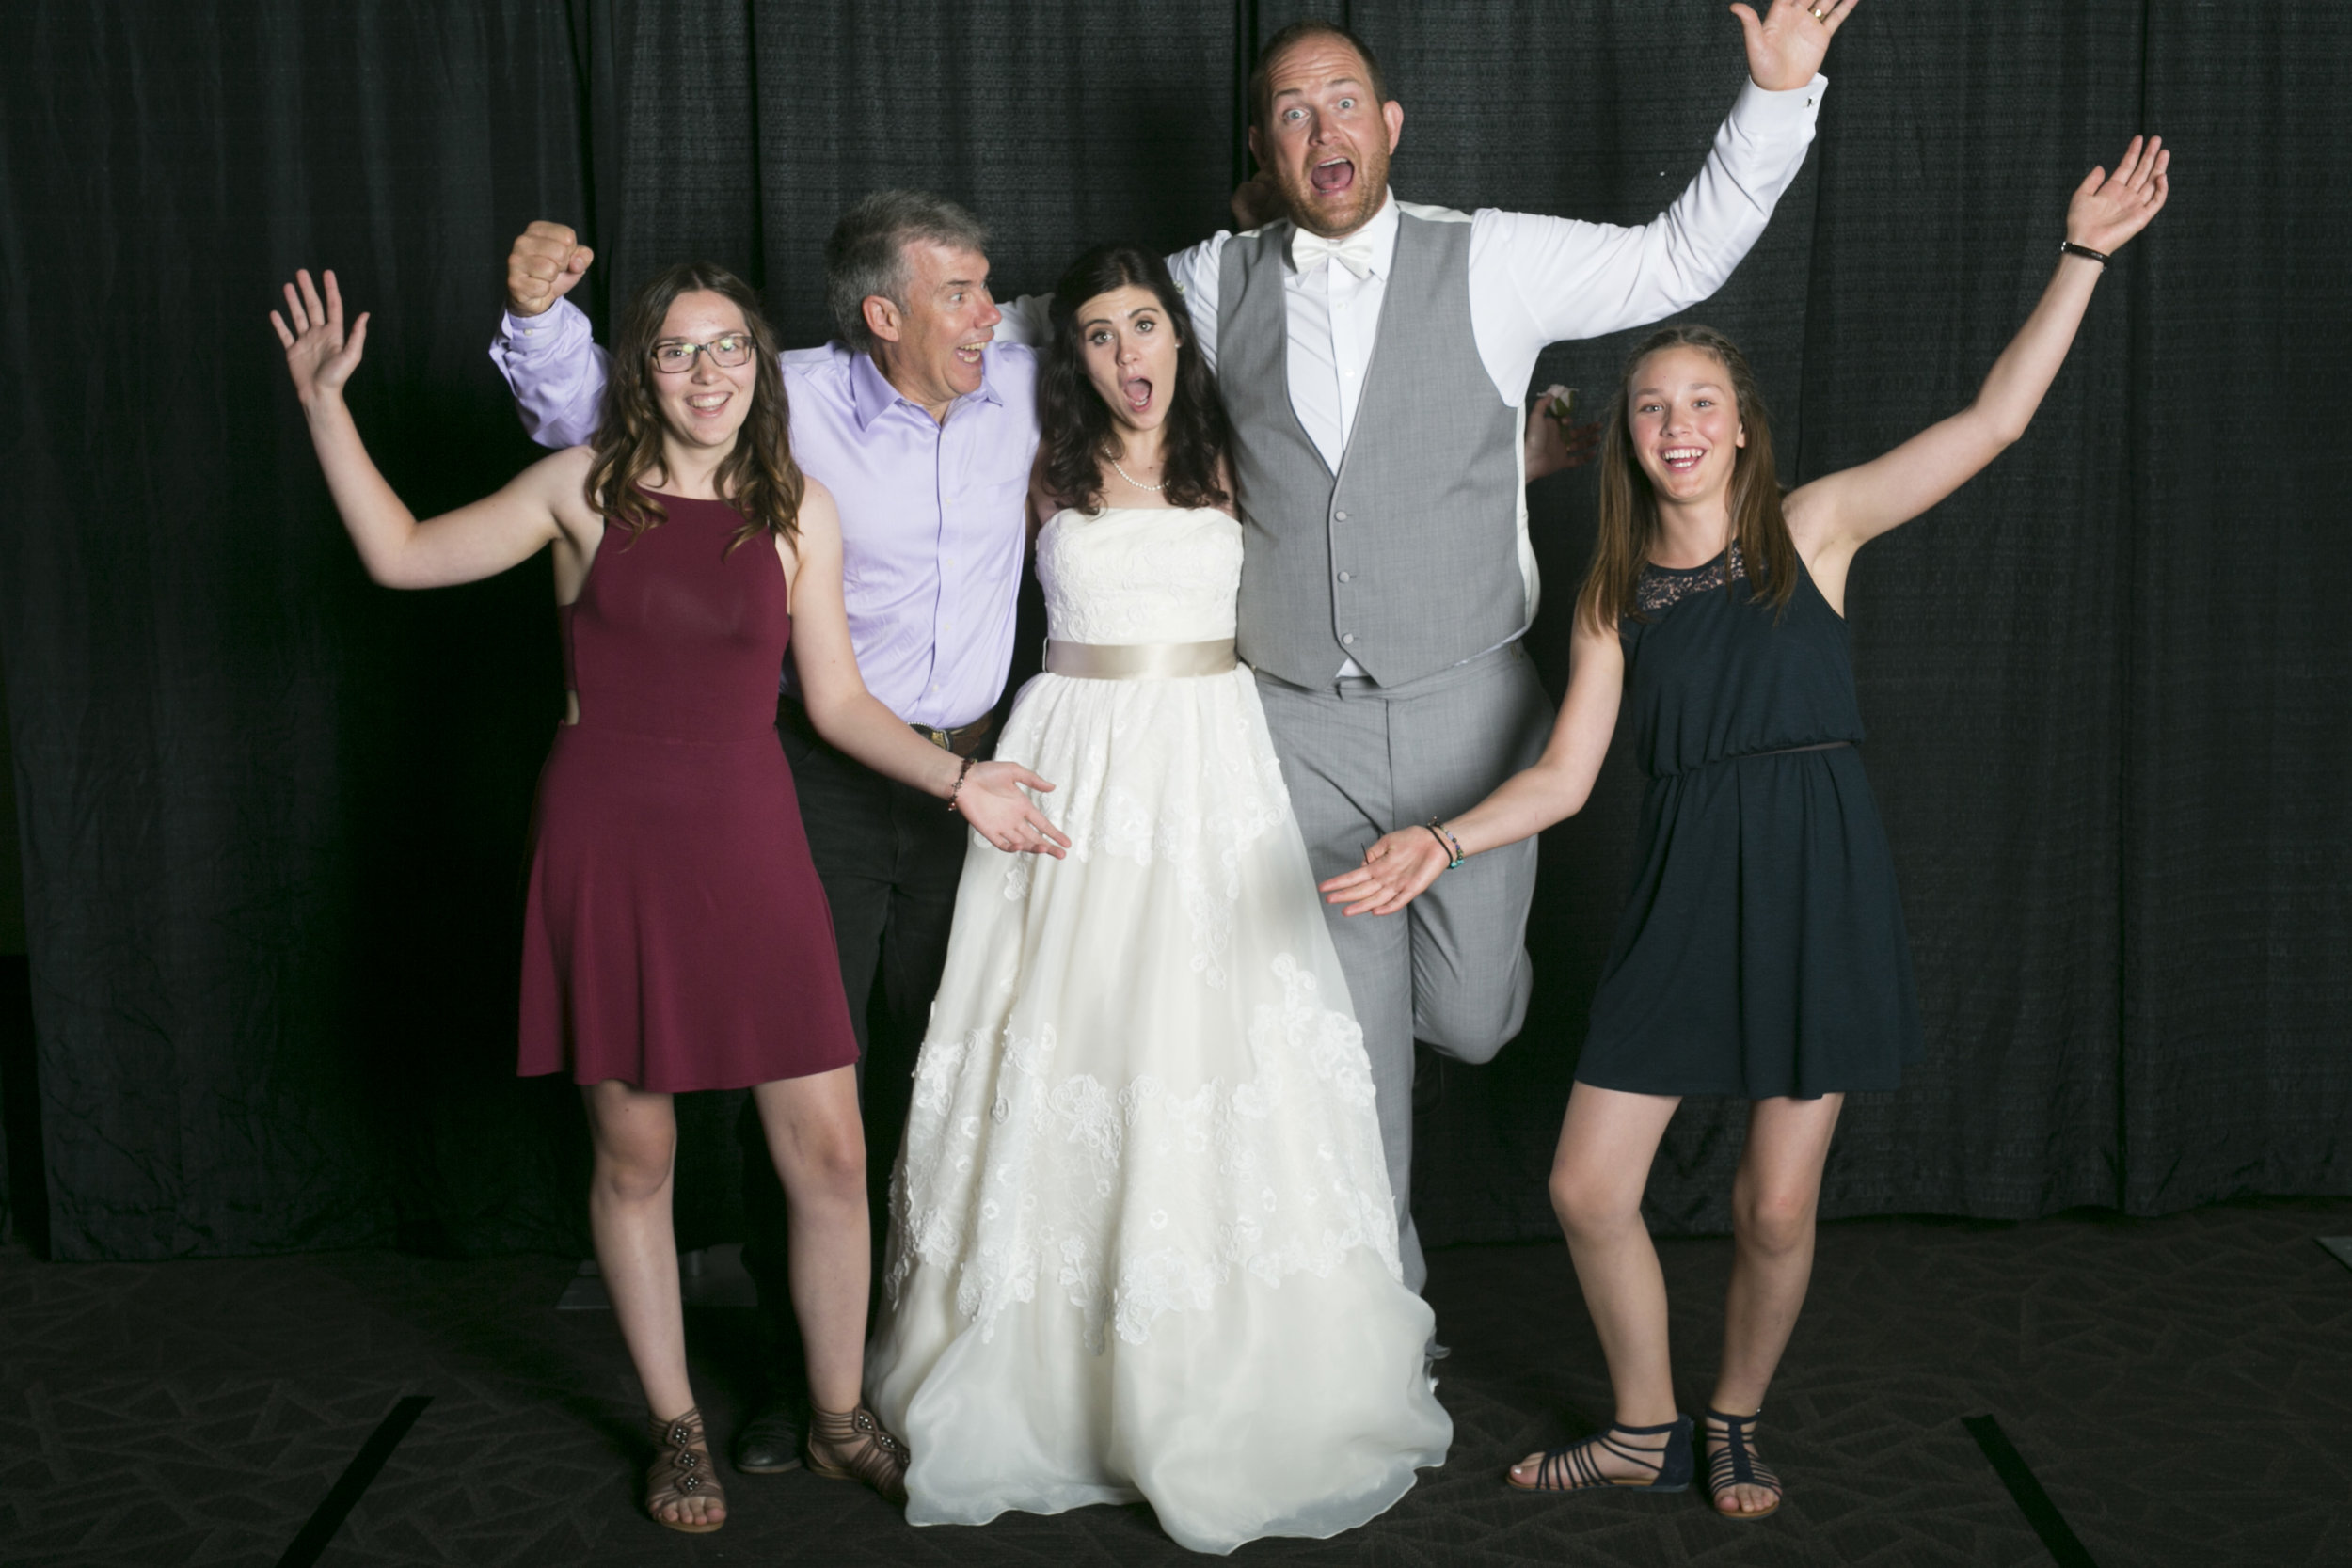 wedding photo booth-105.jpg